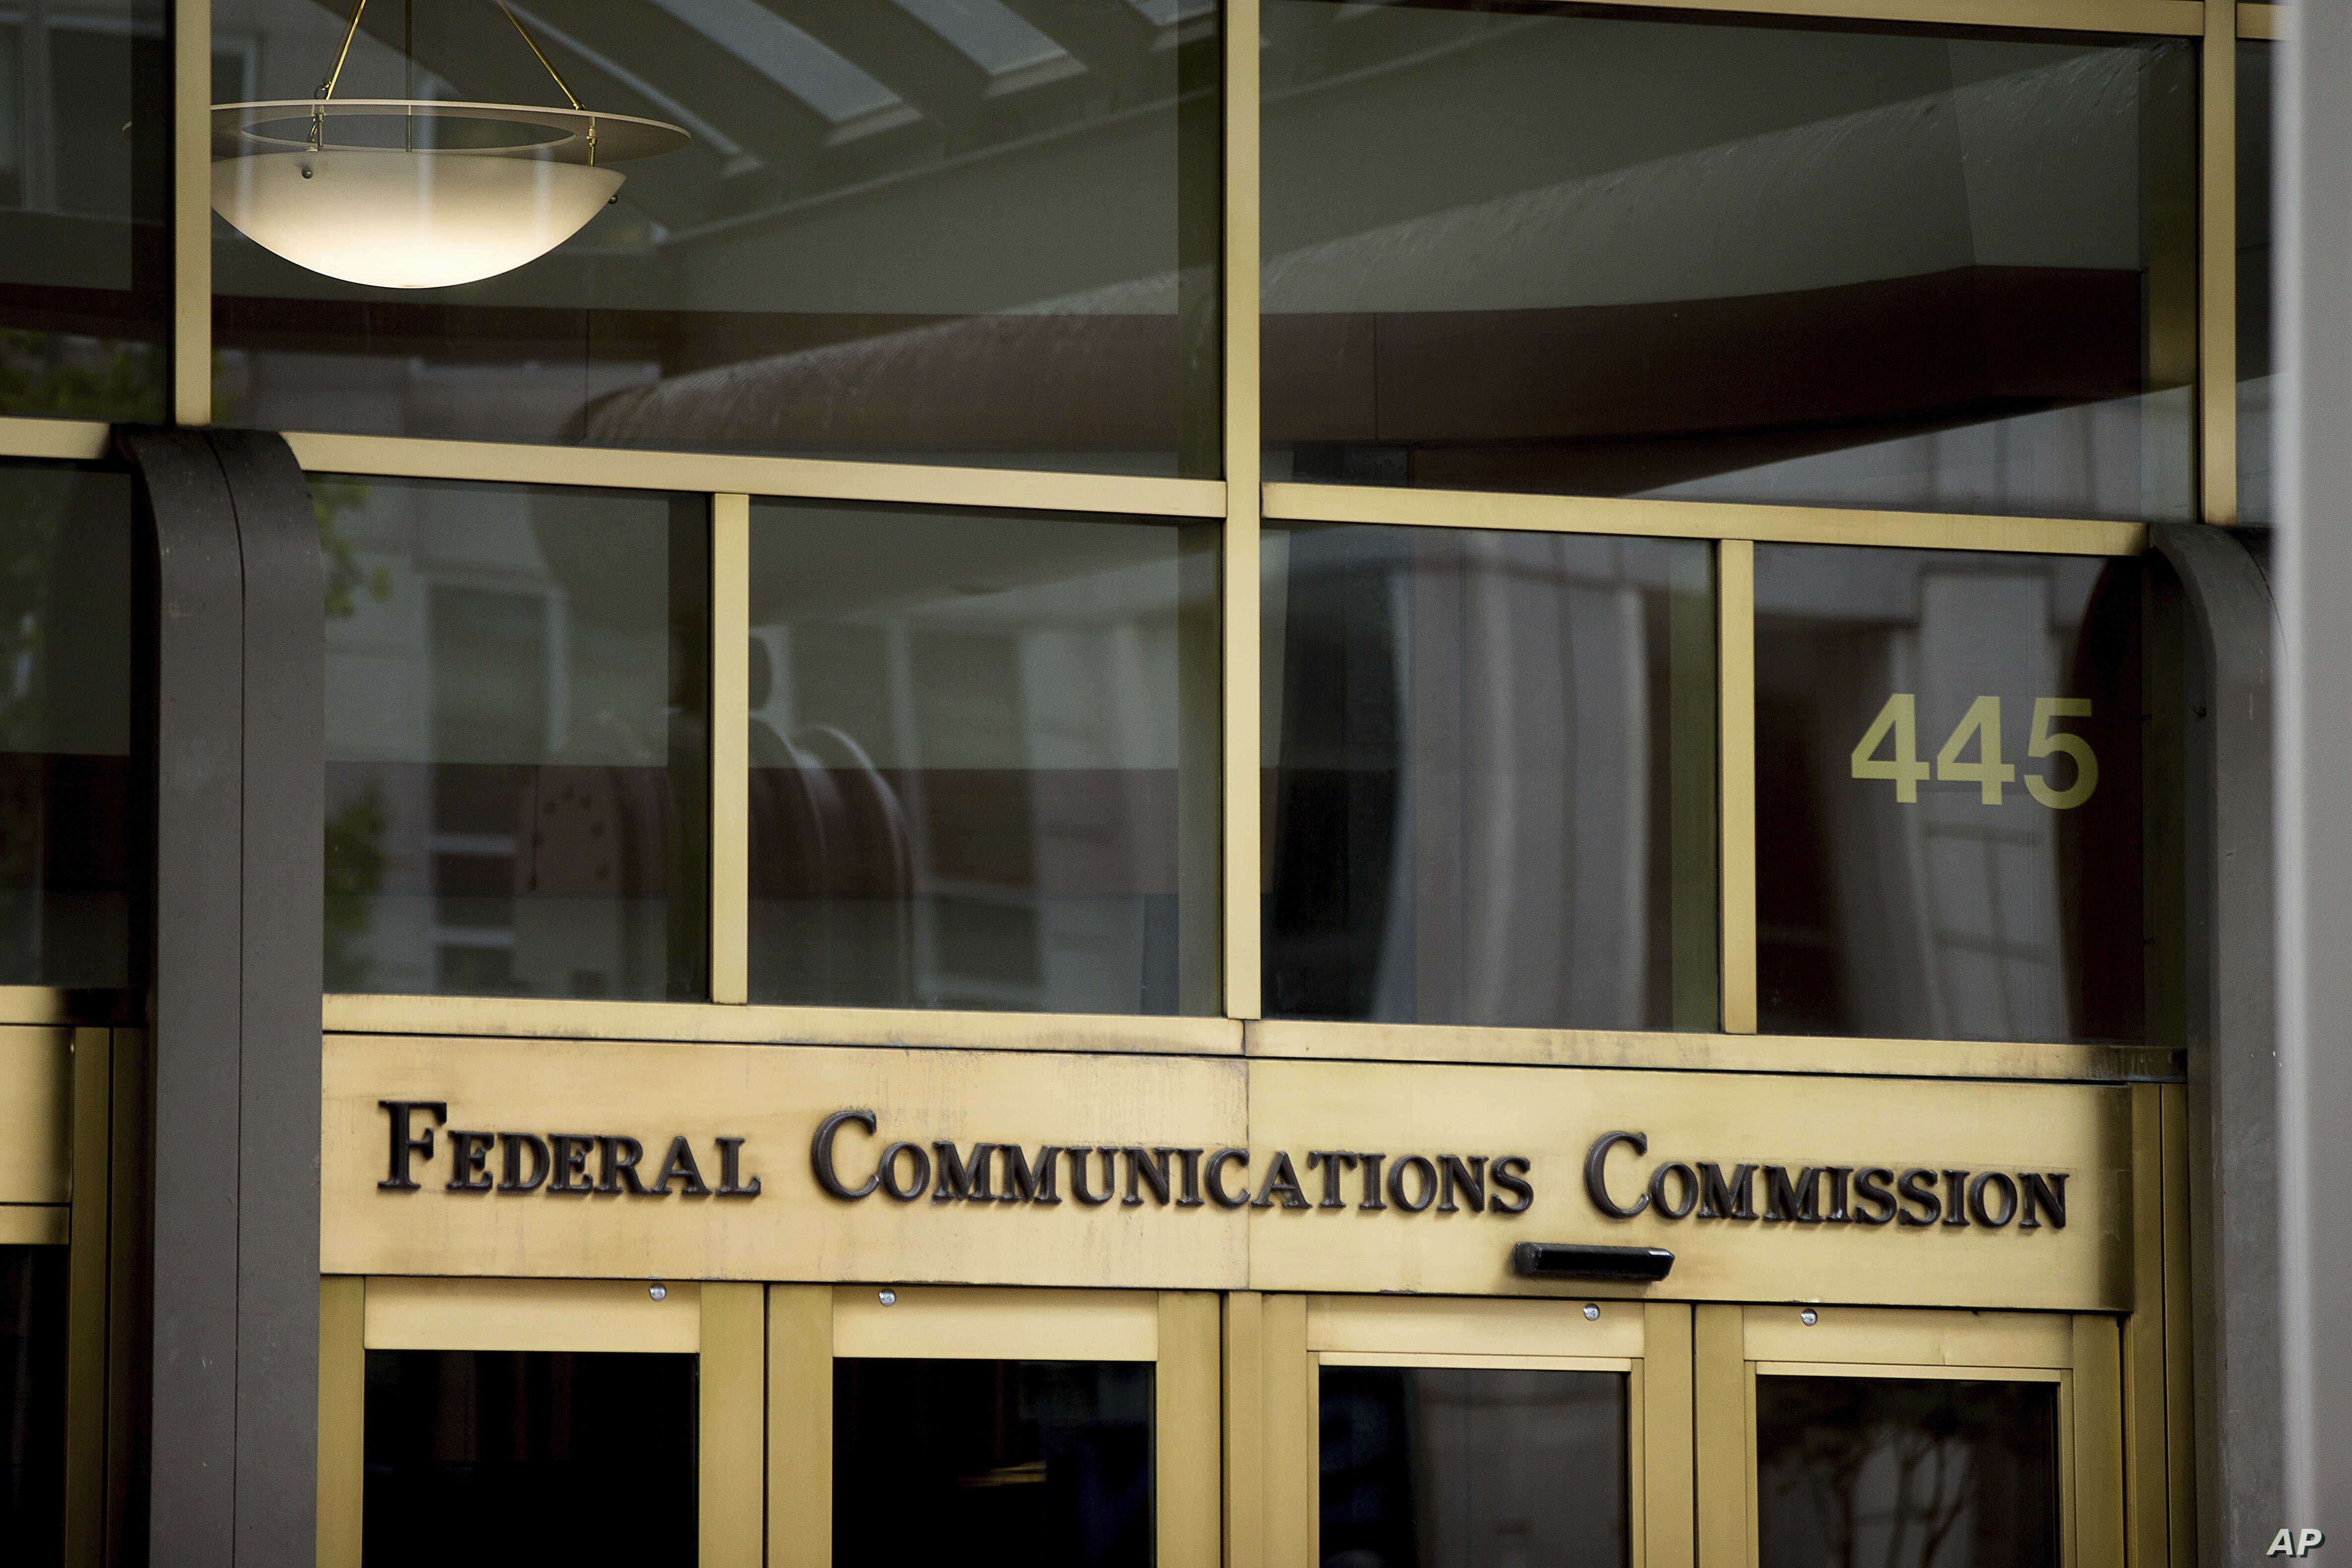 FILE - This June 19, 2015, file photo, shows the Federal Communications Commission building in Washington. Federal Communications Commission Chairman Ajit Pai this month announced new cuts to phone subsidies that could disproportionately impact Nativ...